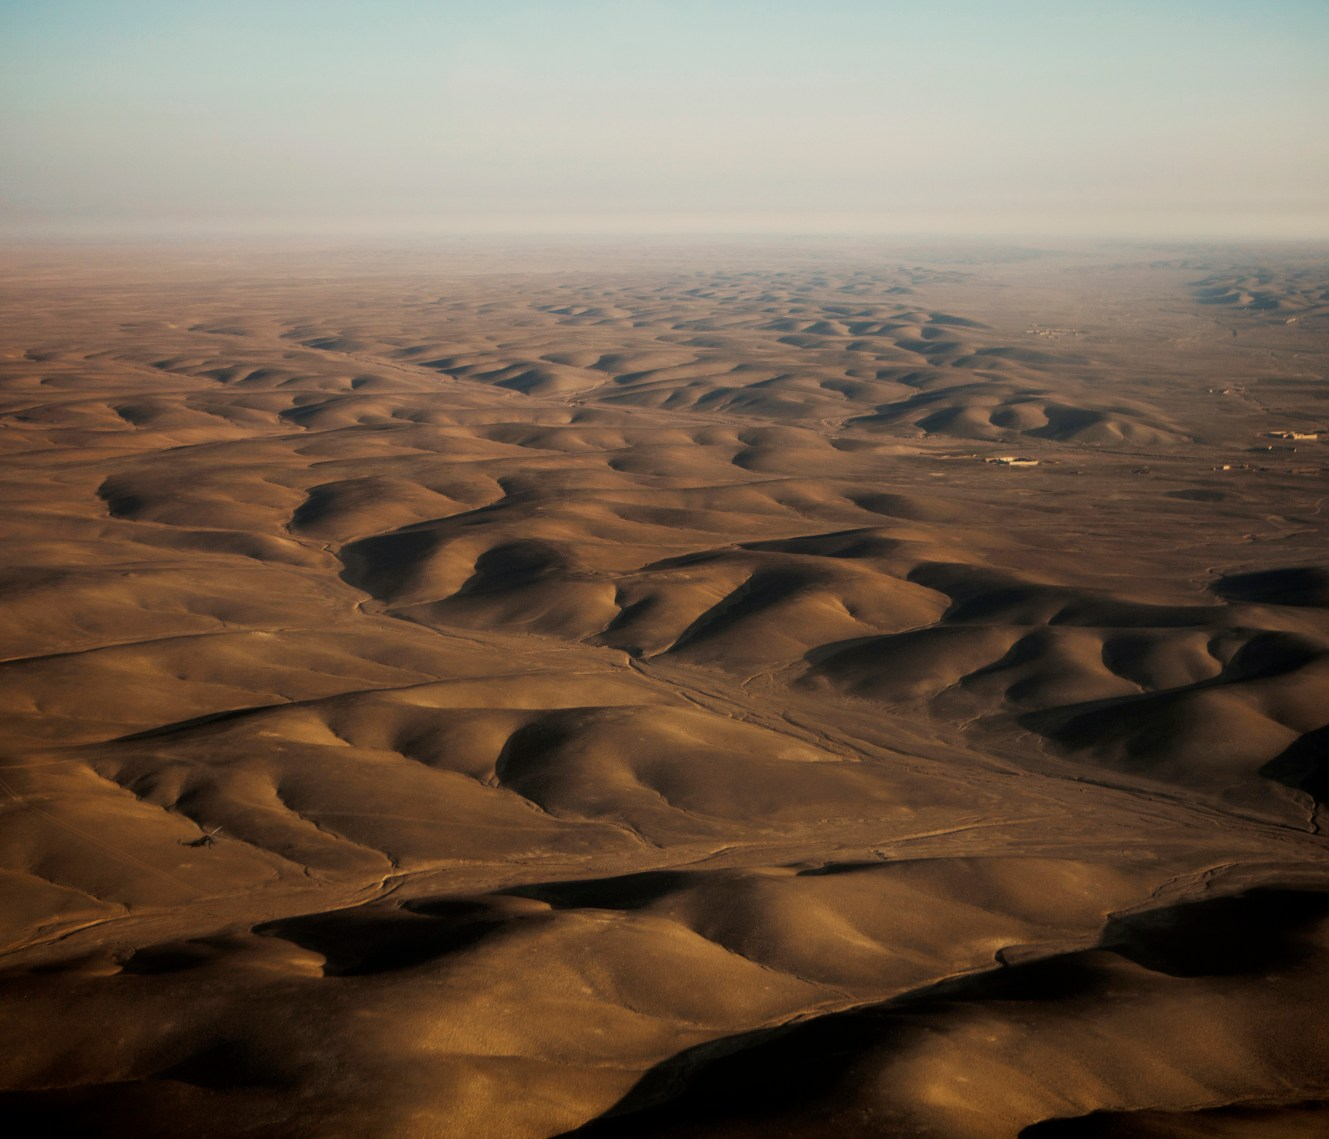 An aerial view of the dry, low hills near Camp Bastion. In June 2011, President Obama announced his plan to begin the withdrawal of US troops from Afghanistan, but there is currently no end date for the war in the troubled country. Helmand is the largest province in Afghanistan, and the heart of the war against terror. Commanders on the ground have described the situation as the most brutal conflict the British Army has been involved in since the Korean War. Much of the fighting between NATO and Taliban forces is taking place in this province and Helmand is a true Taliban stronghold. The Helmand River flows through the mainly desert region. With these images I am trying to show a softer side to this troubled area of Afghanistan.